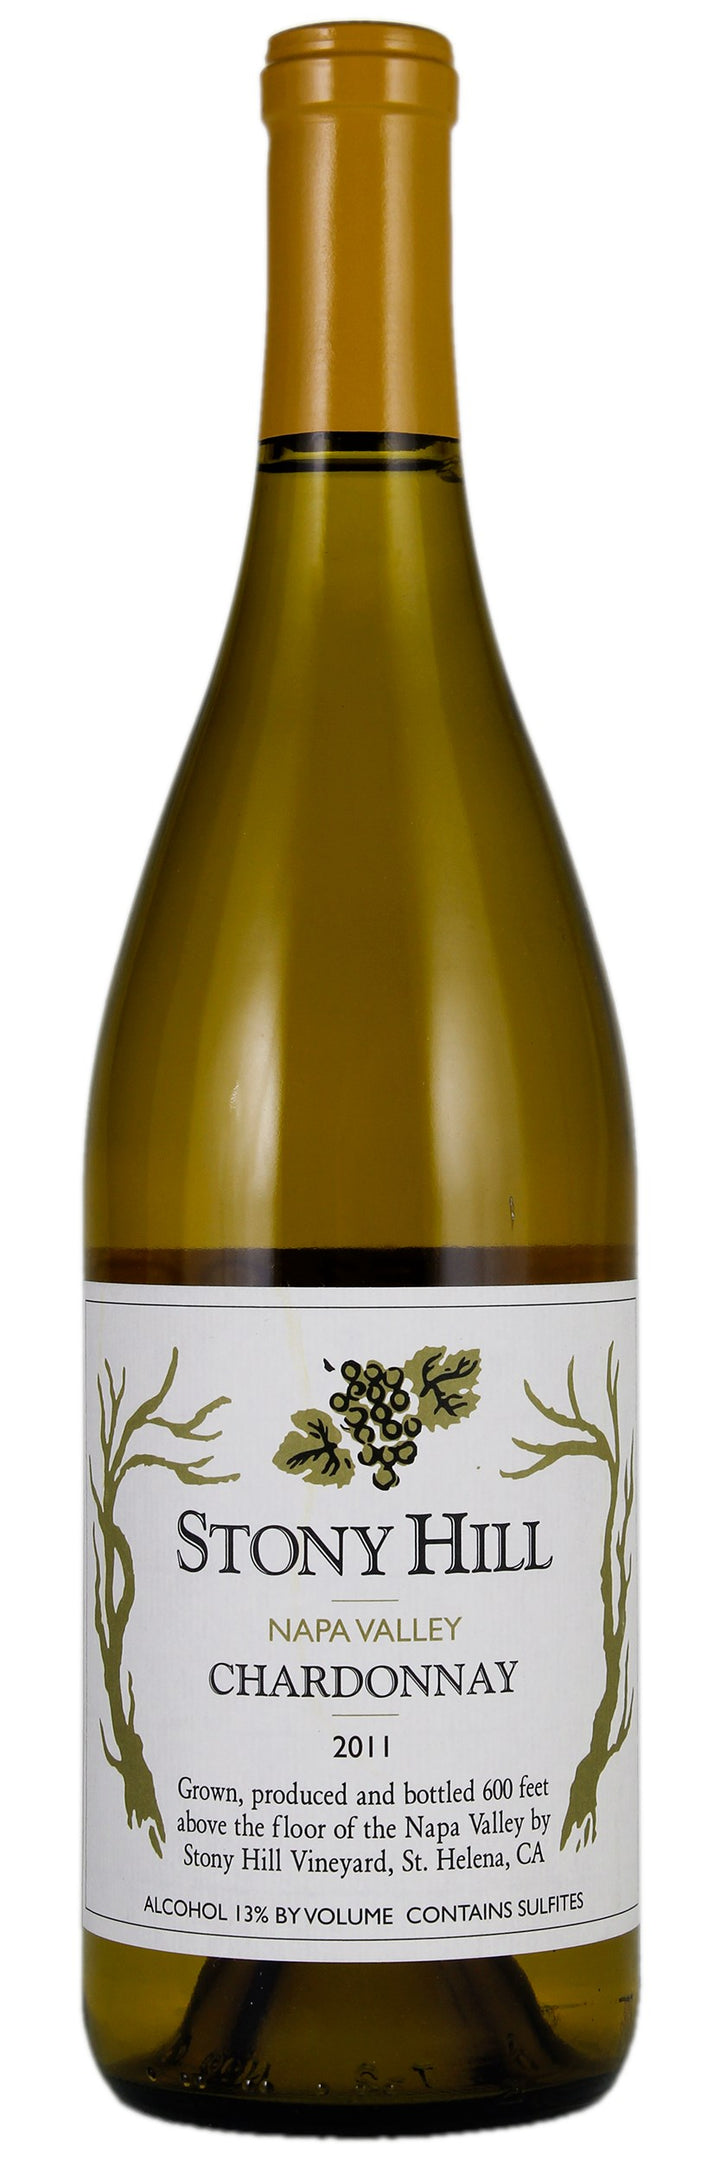 2011 Stony Hill Vineyard Chardonnay, Napa Valley